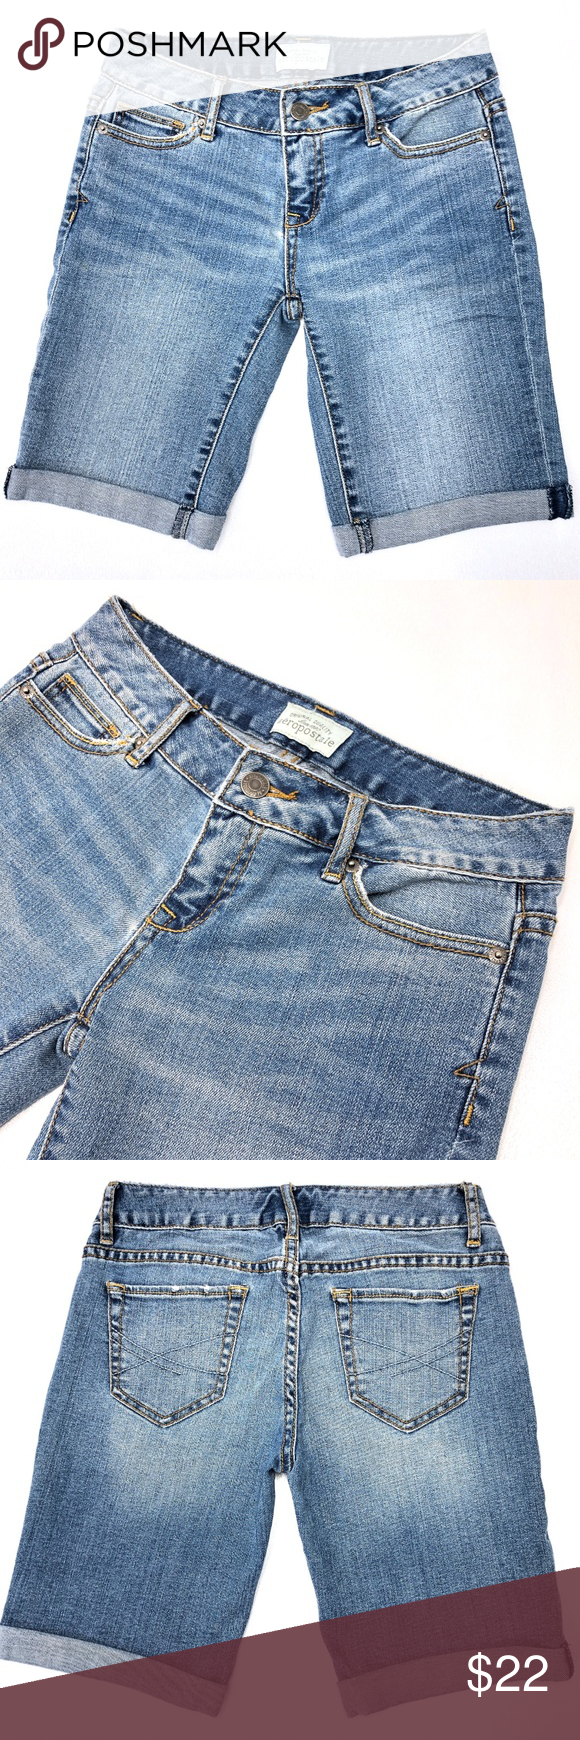 8da5b418b3 Aeropostale Shorts size 0 The perfect go-to shorts this summer! Pairs with  everything! Excellent Condition, no apparent flaws! Make me an offer!